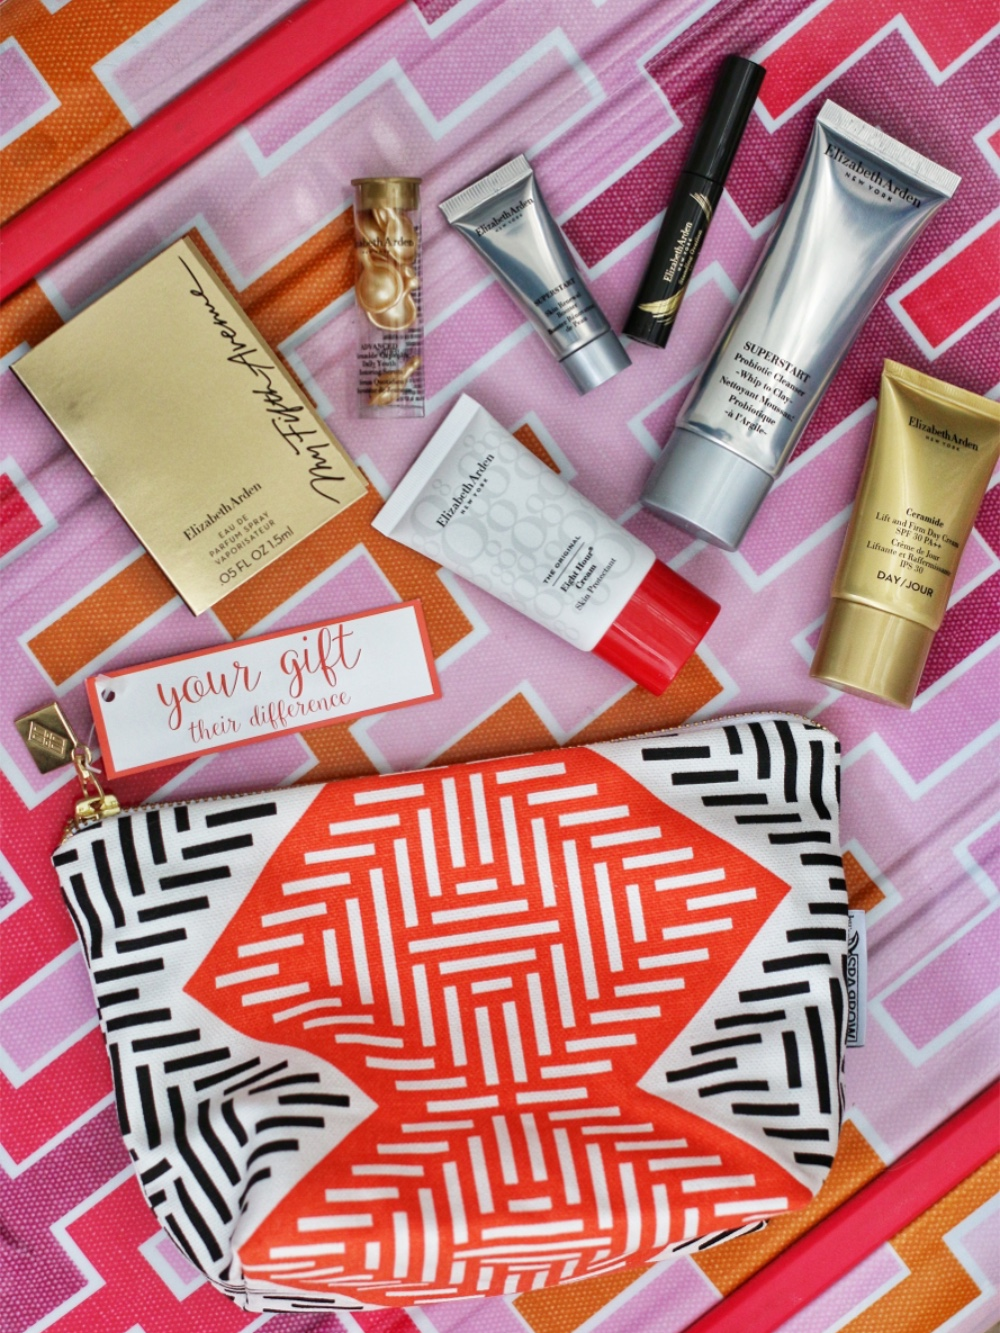 Elizabeth Arden Free Gift With Purchase 2019